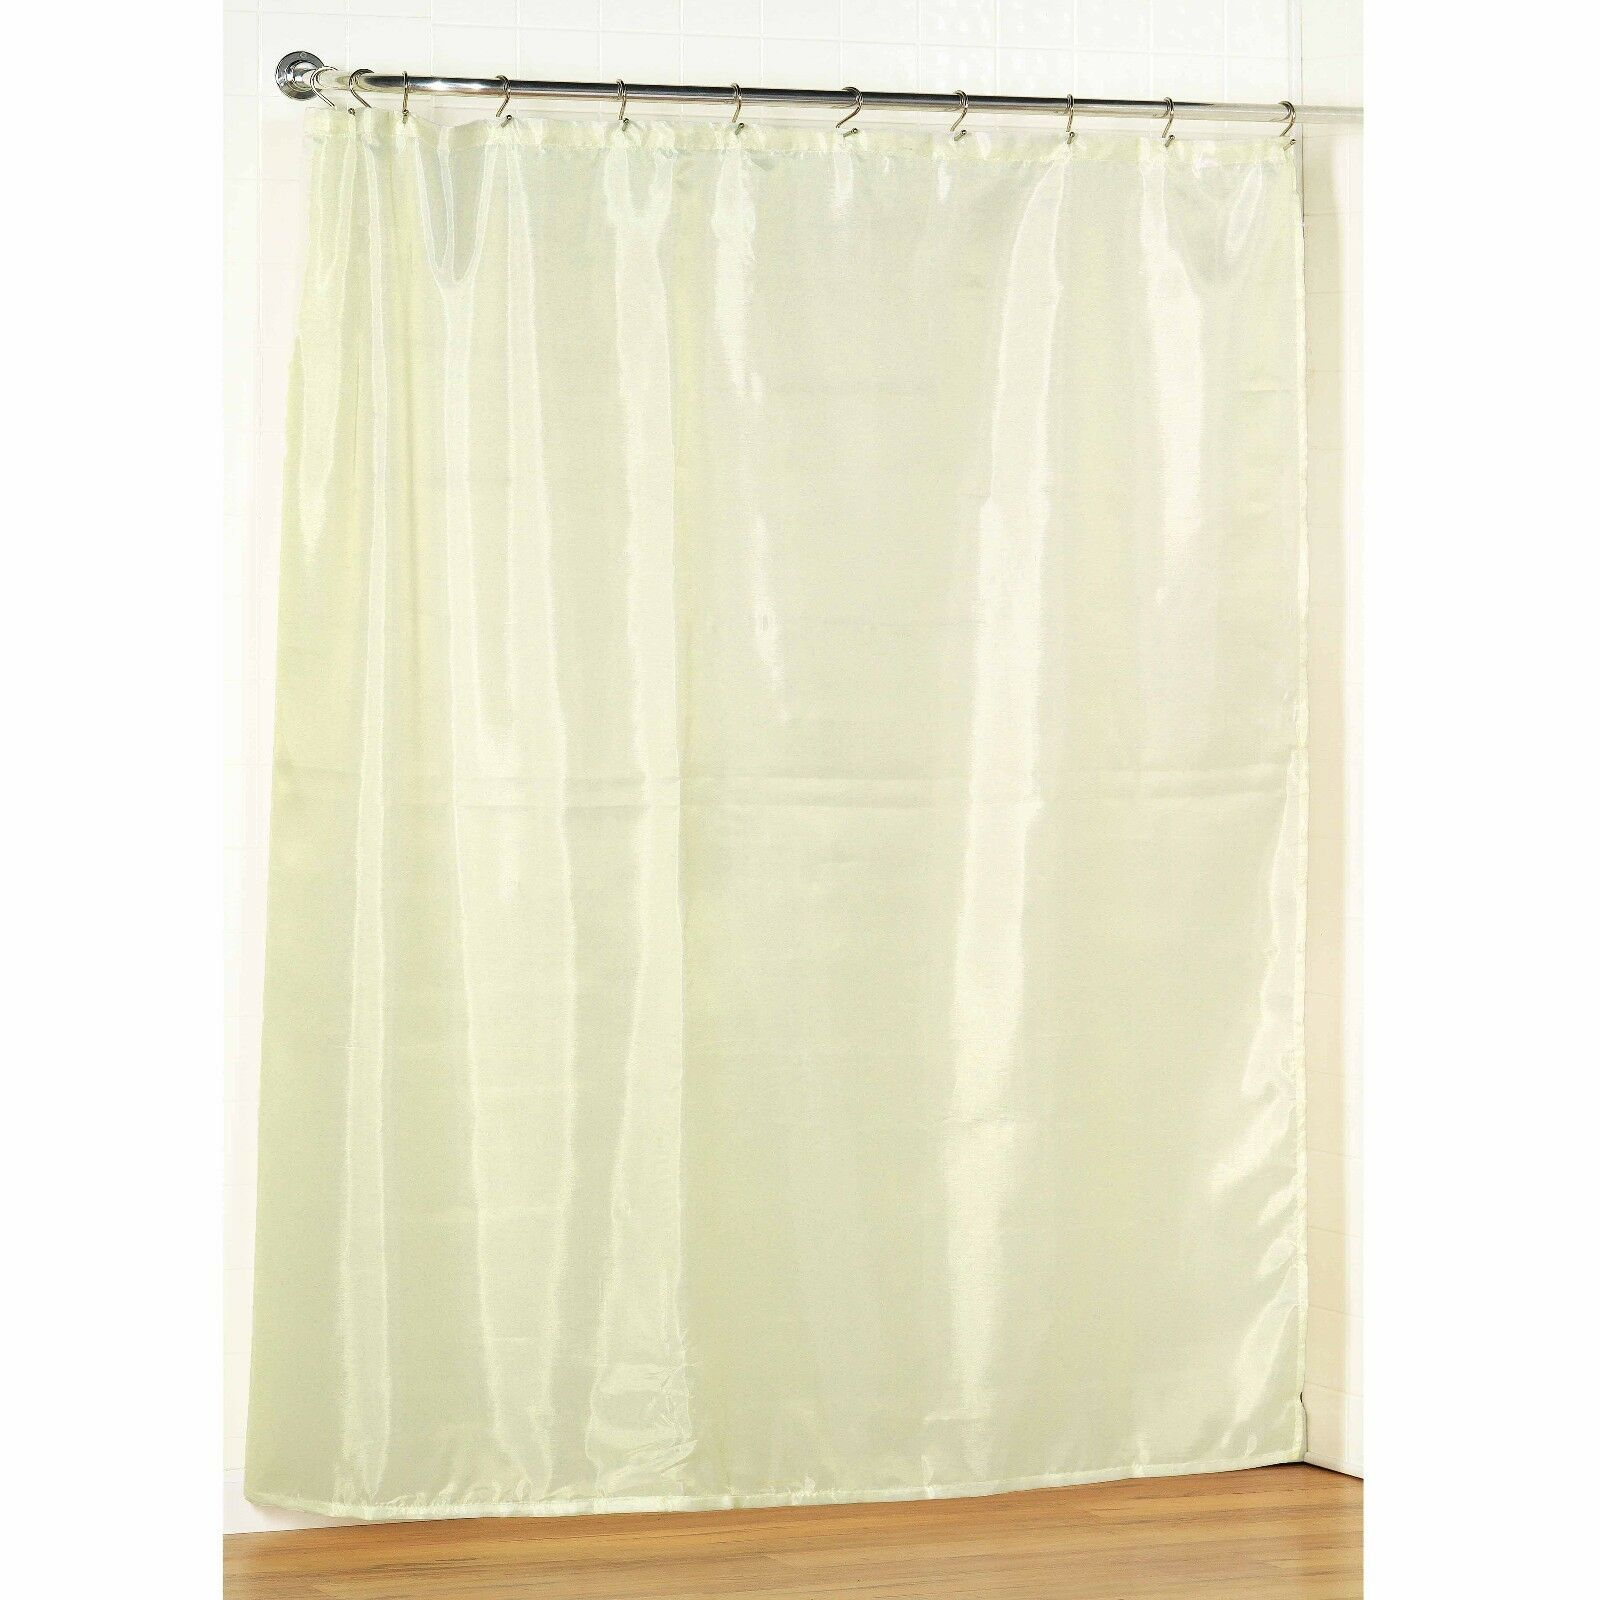 Ivory Fabric Shower Curtain Liner Water Repellent Weight Hem 3 Sizes Picclick